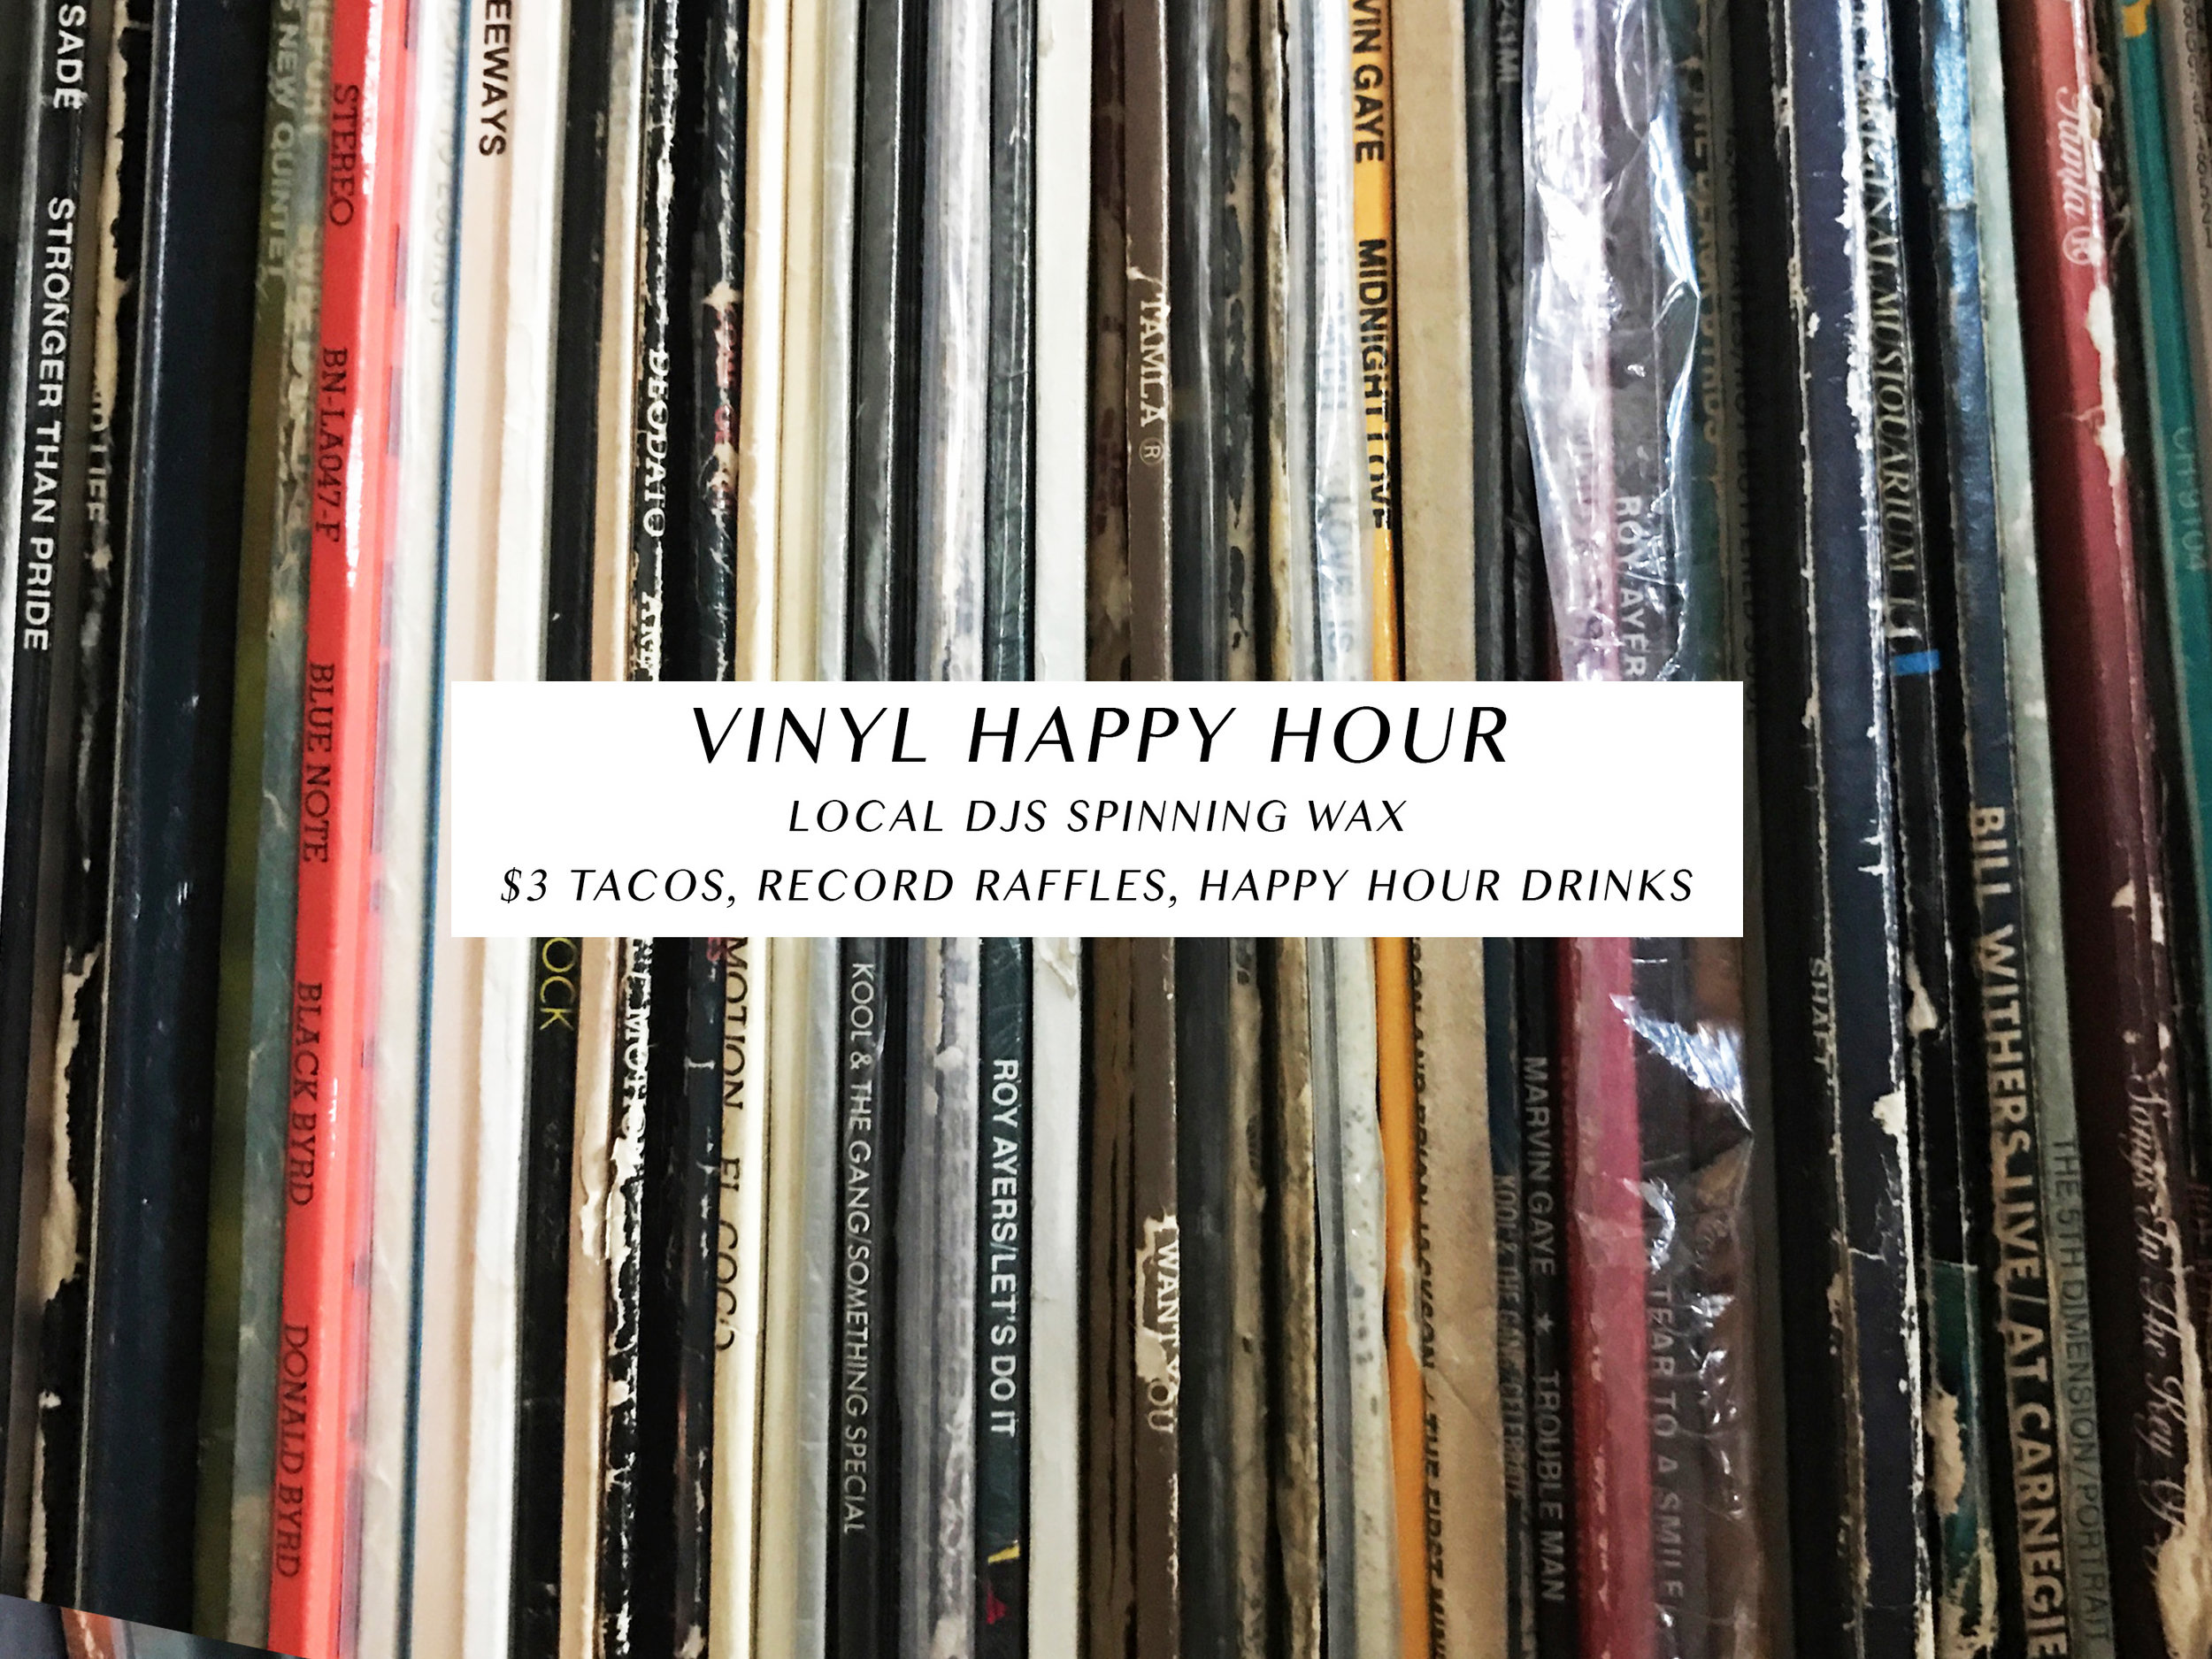 vinyl-happy-hour-2.JPG